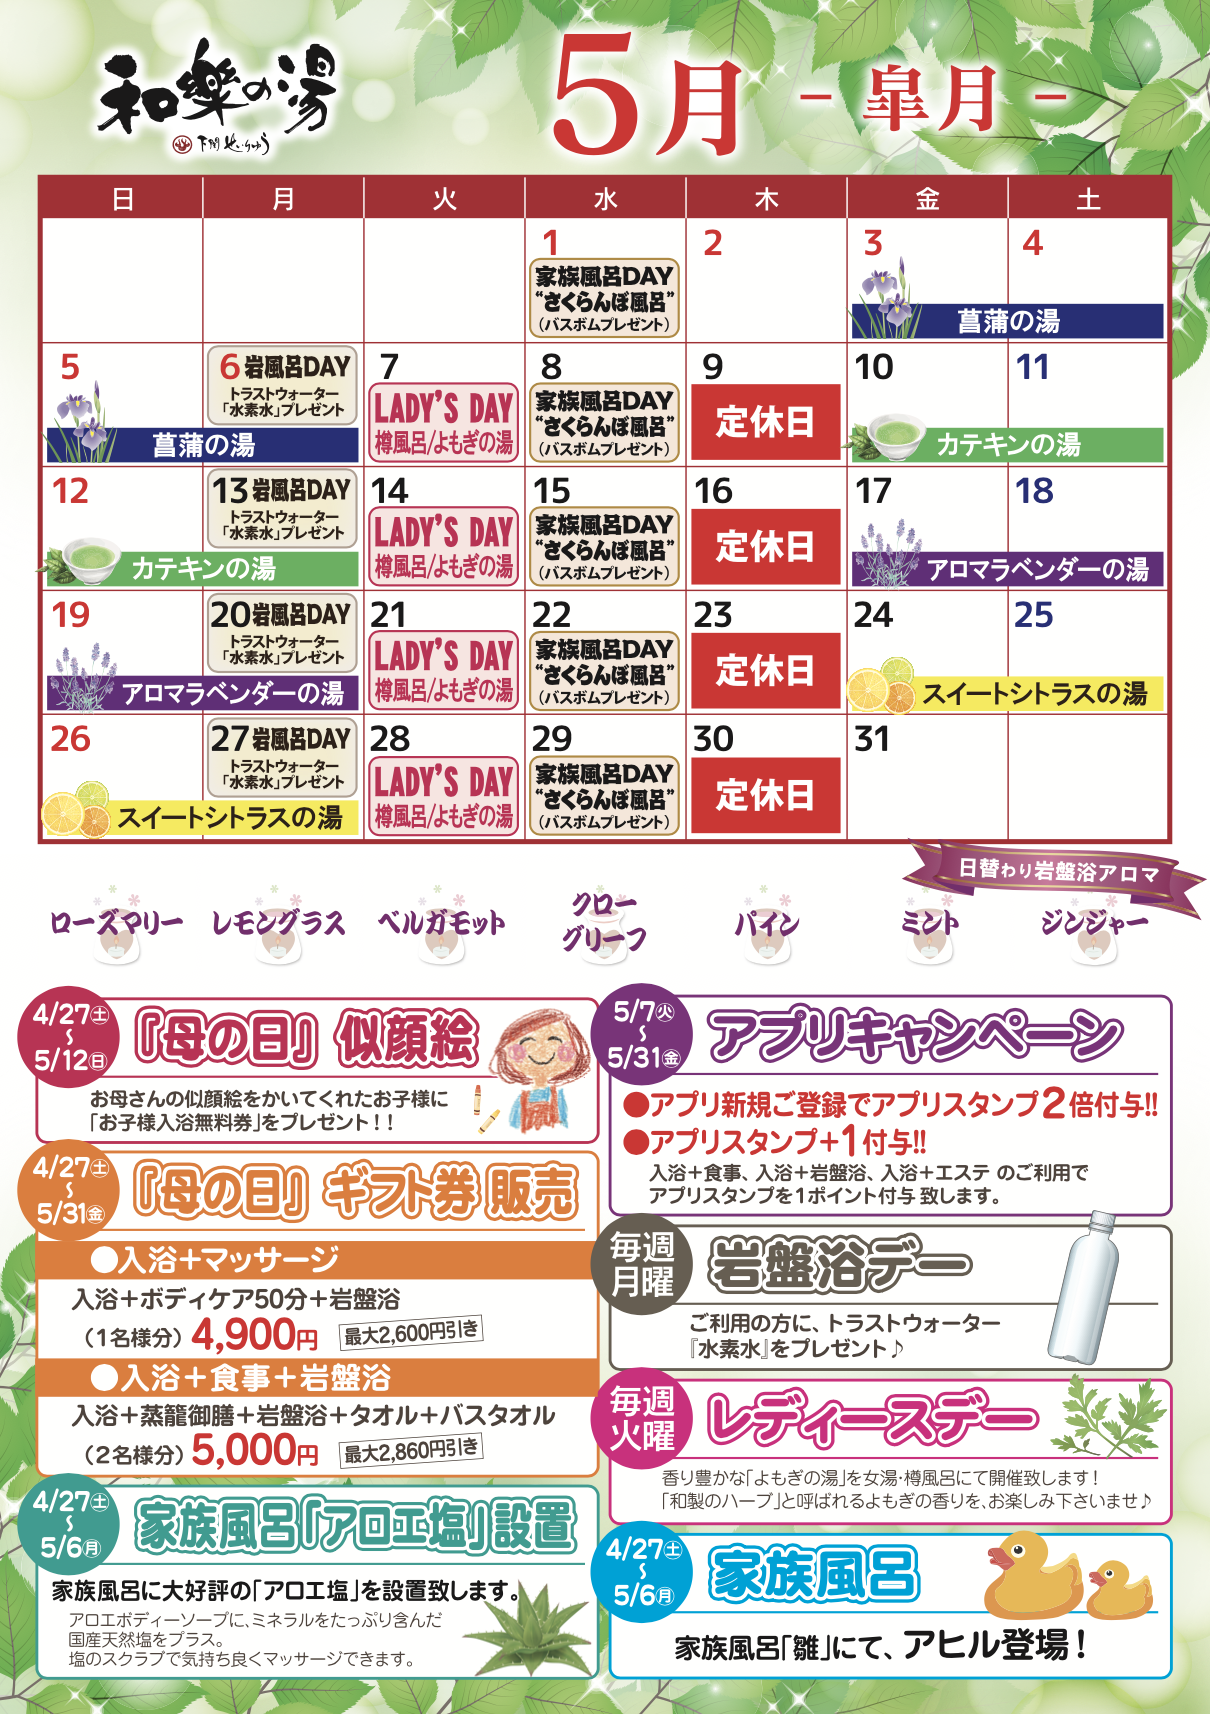 http://waraku-t.co.jp/warakunoyu.jp/2019/05/30/f4a62d30b83f630e5951649a562b2240.png